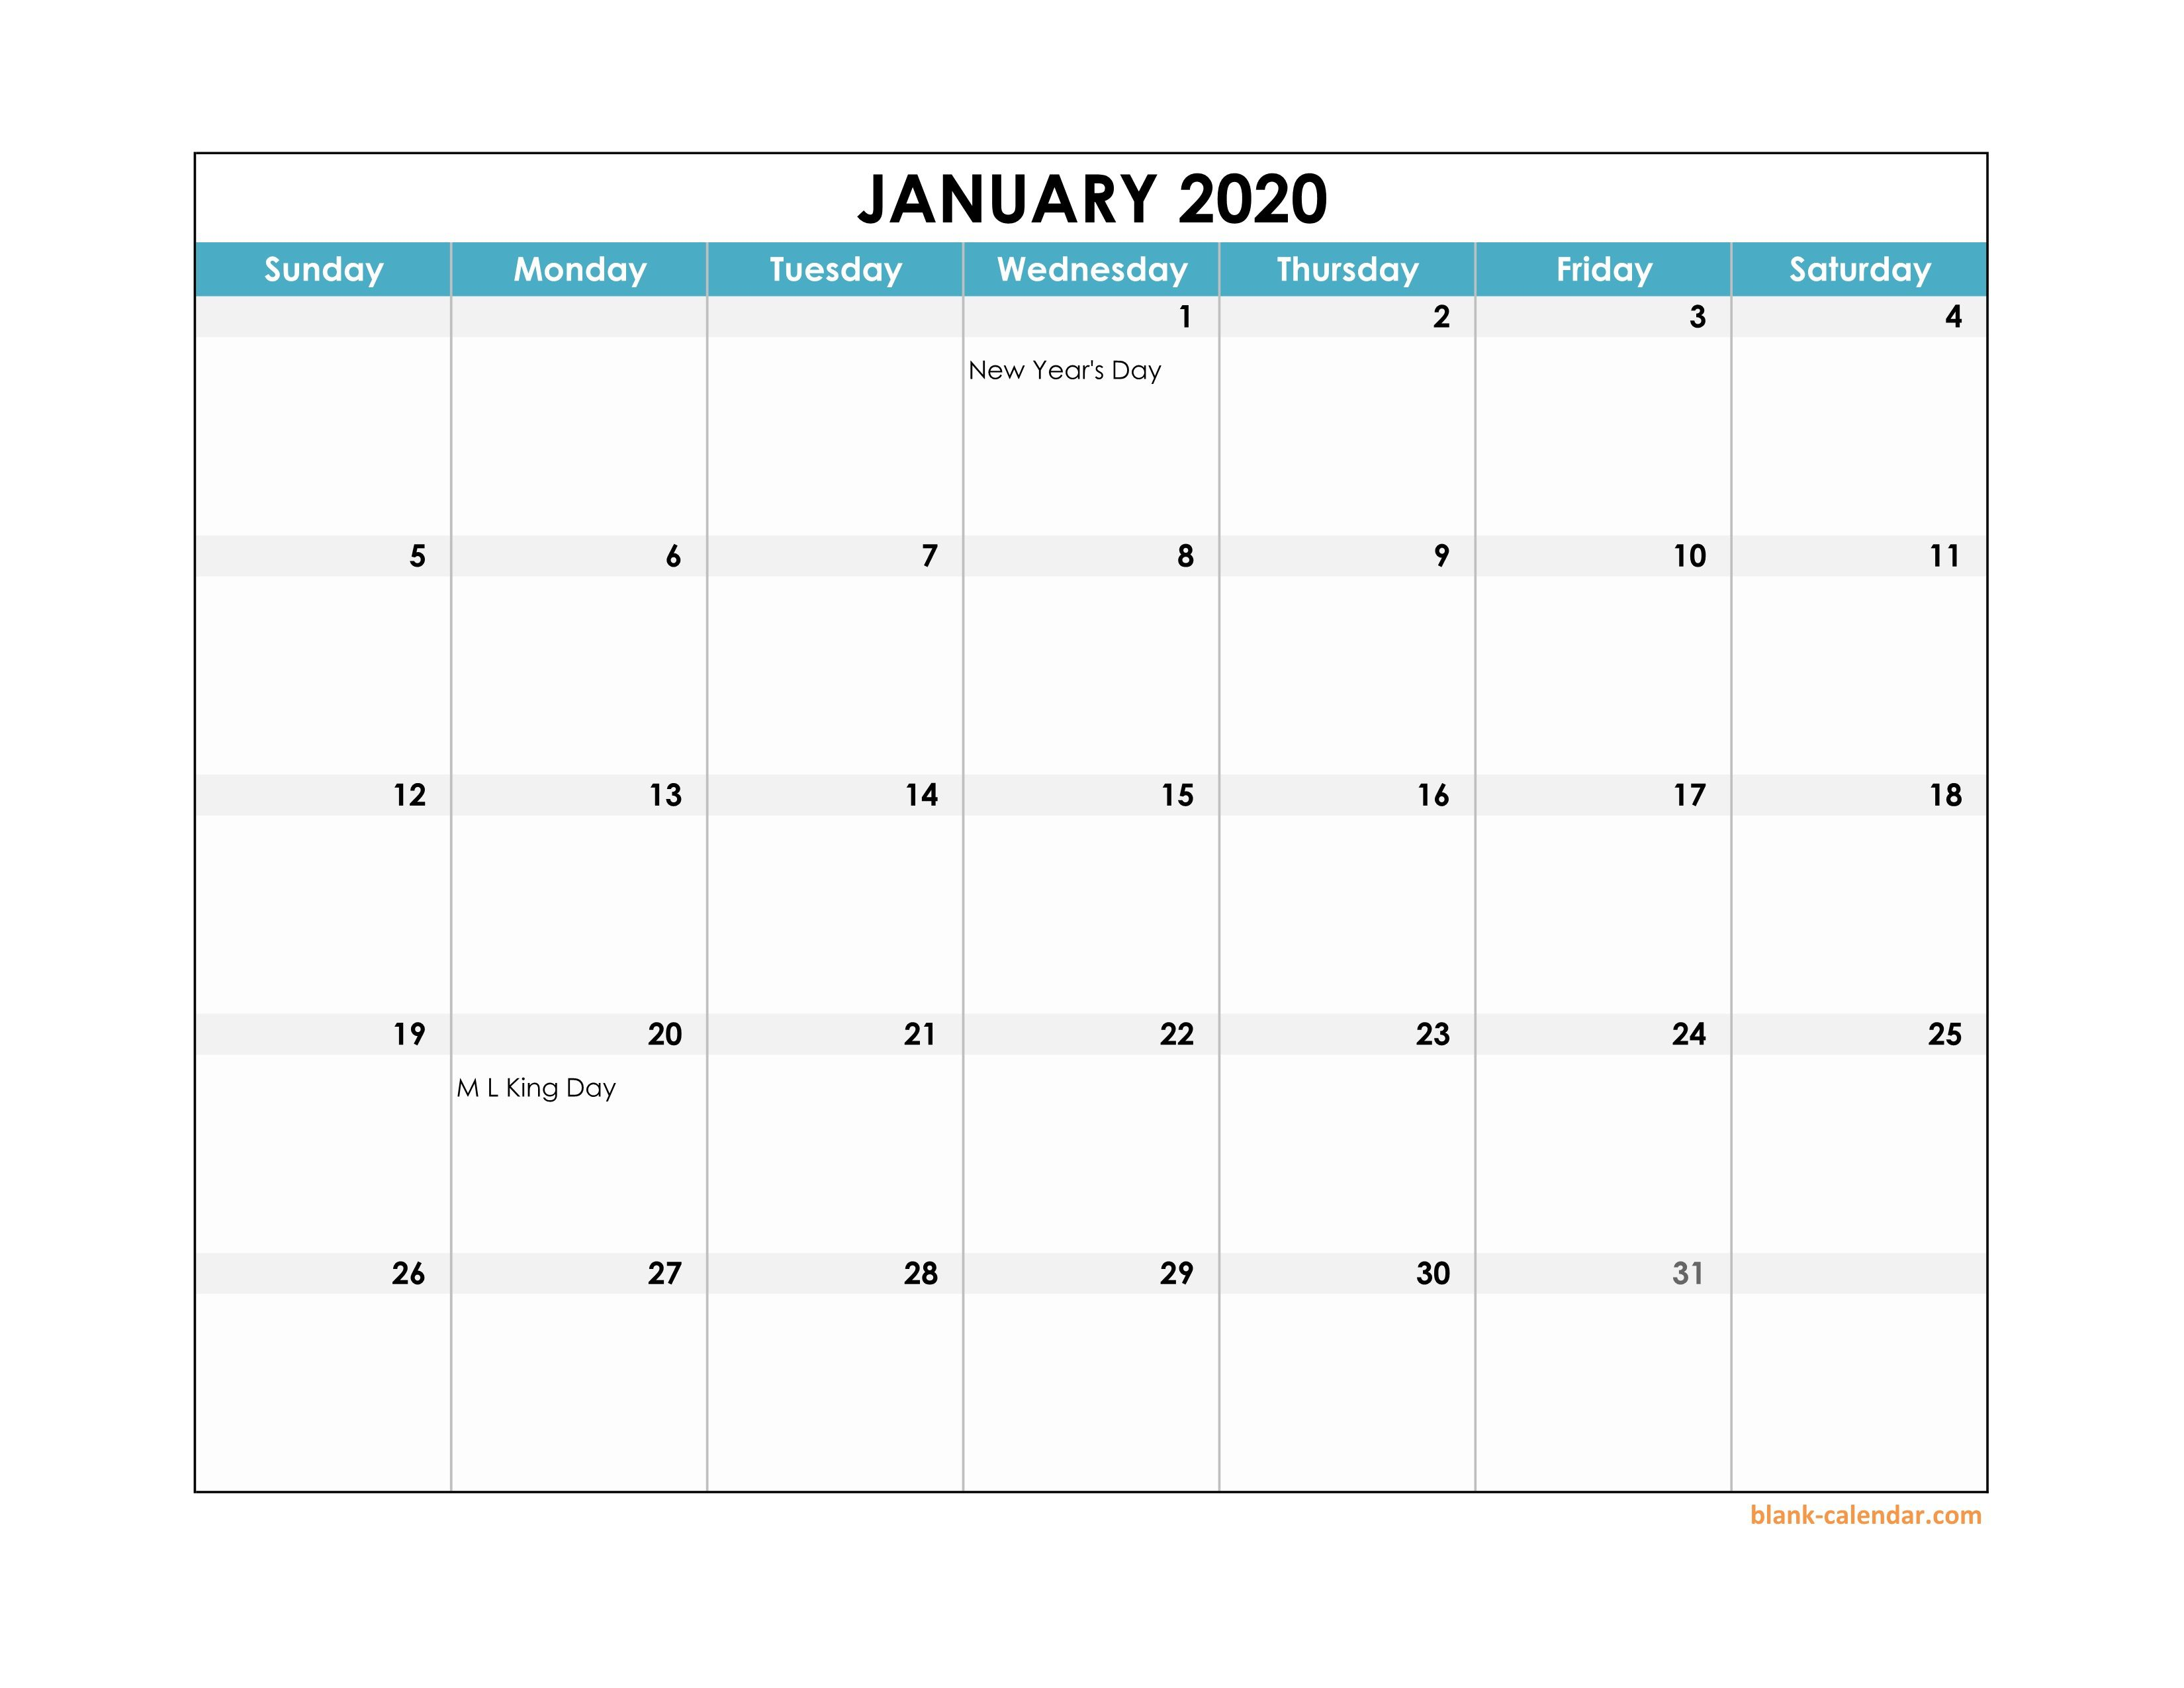 003 Fascinating Calendar 2020 Template Excel Photo  Monthly Free Uk In Format DownloadFull